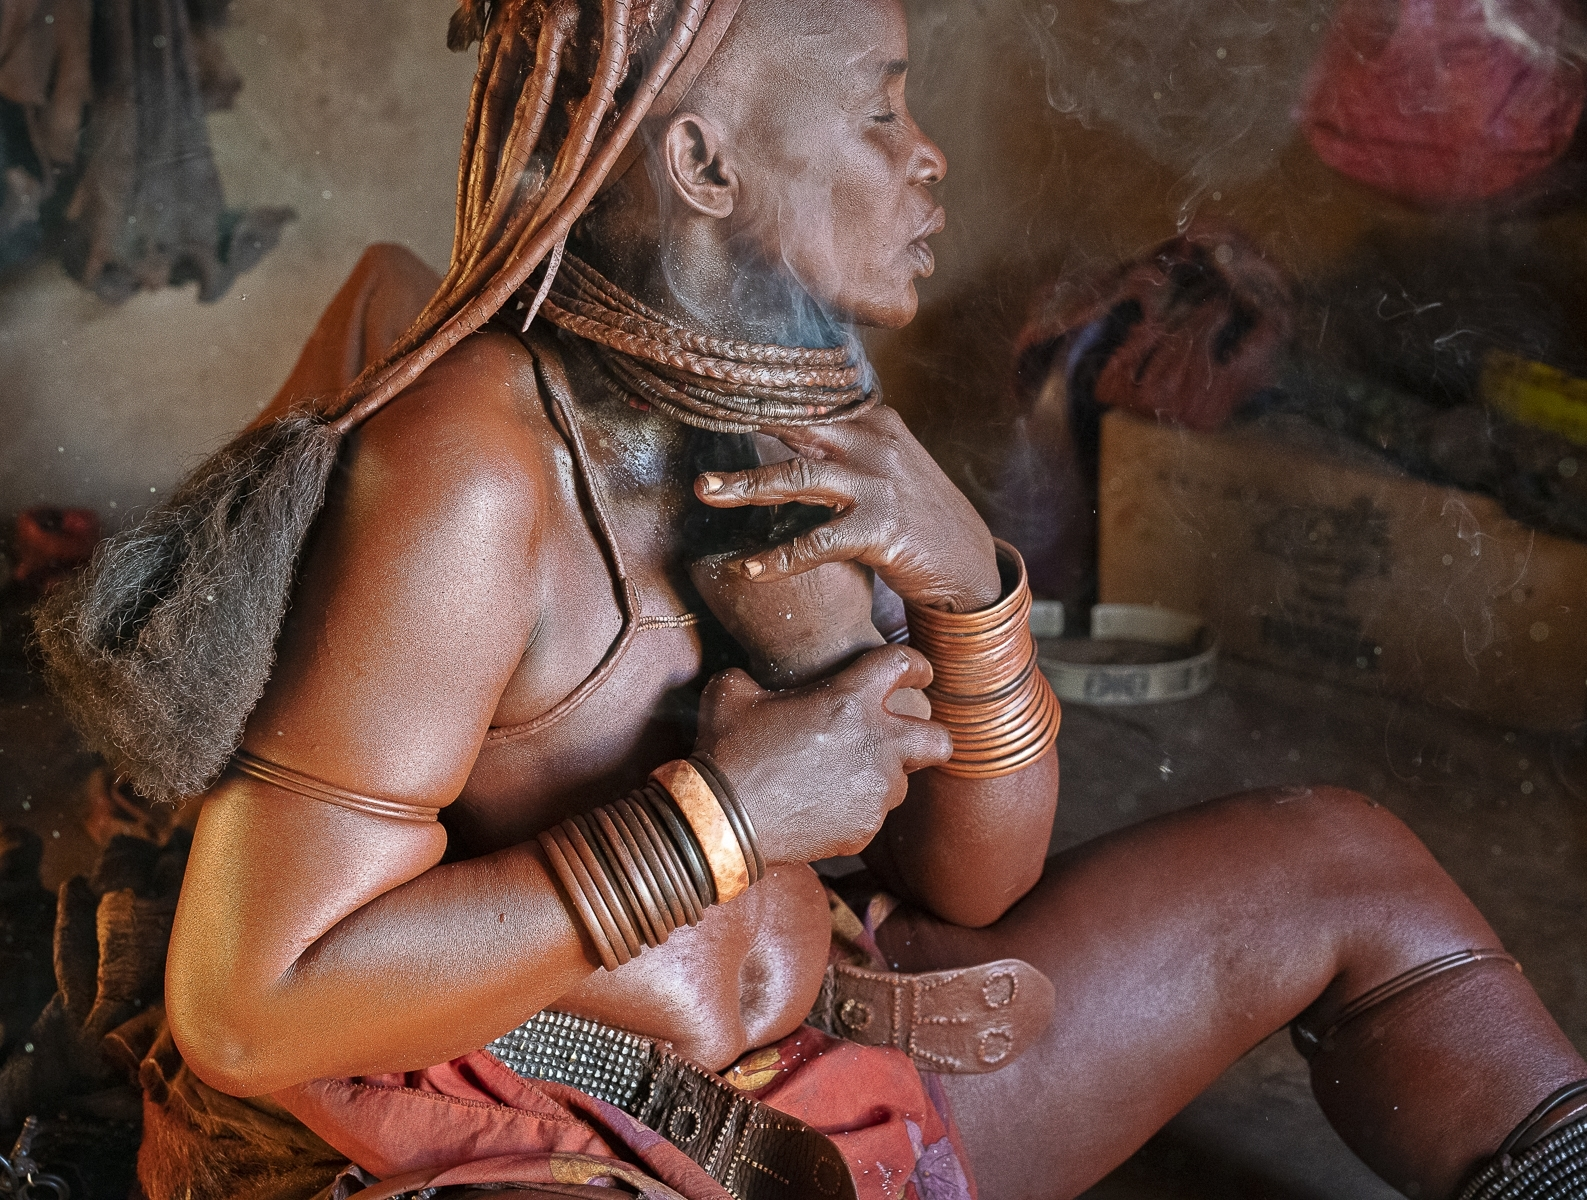 Himba-Tribeswoman-Perfumes-her-Body-with-Smoldering-Herbs.-Opuwo-Namibia.-TM-1-Place-by-Dorothy-Weaver-MR